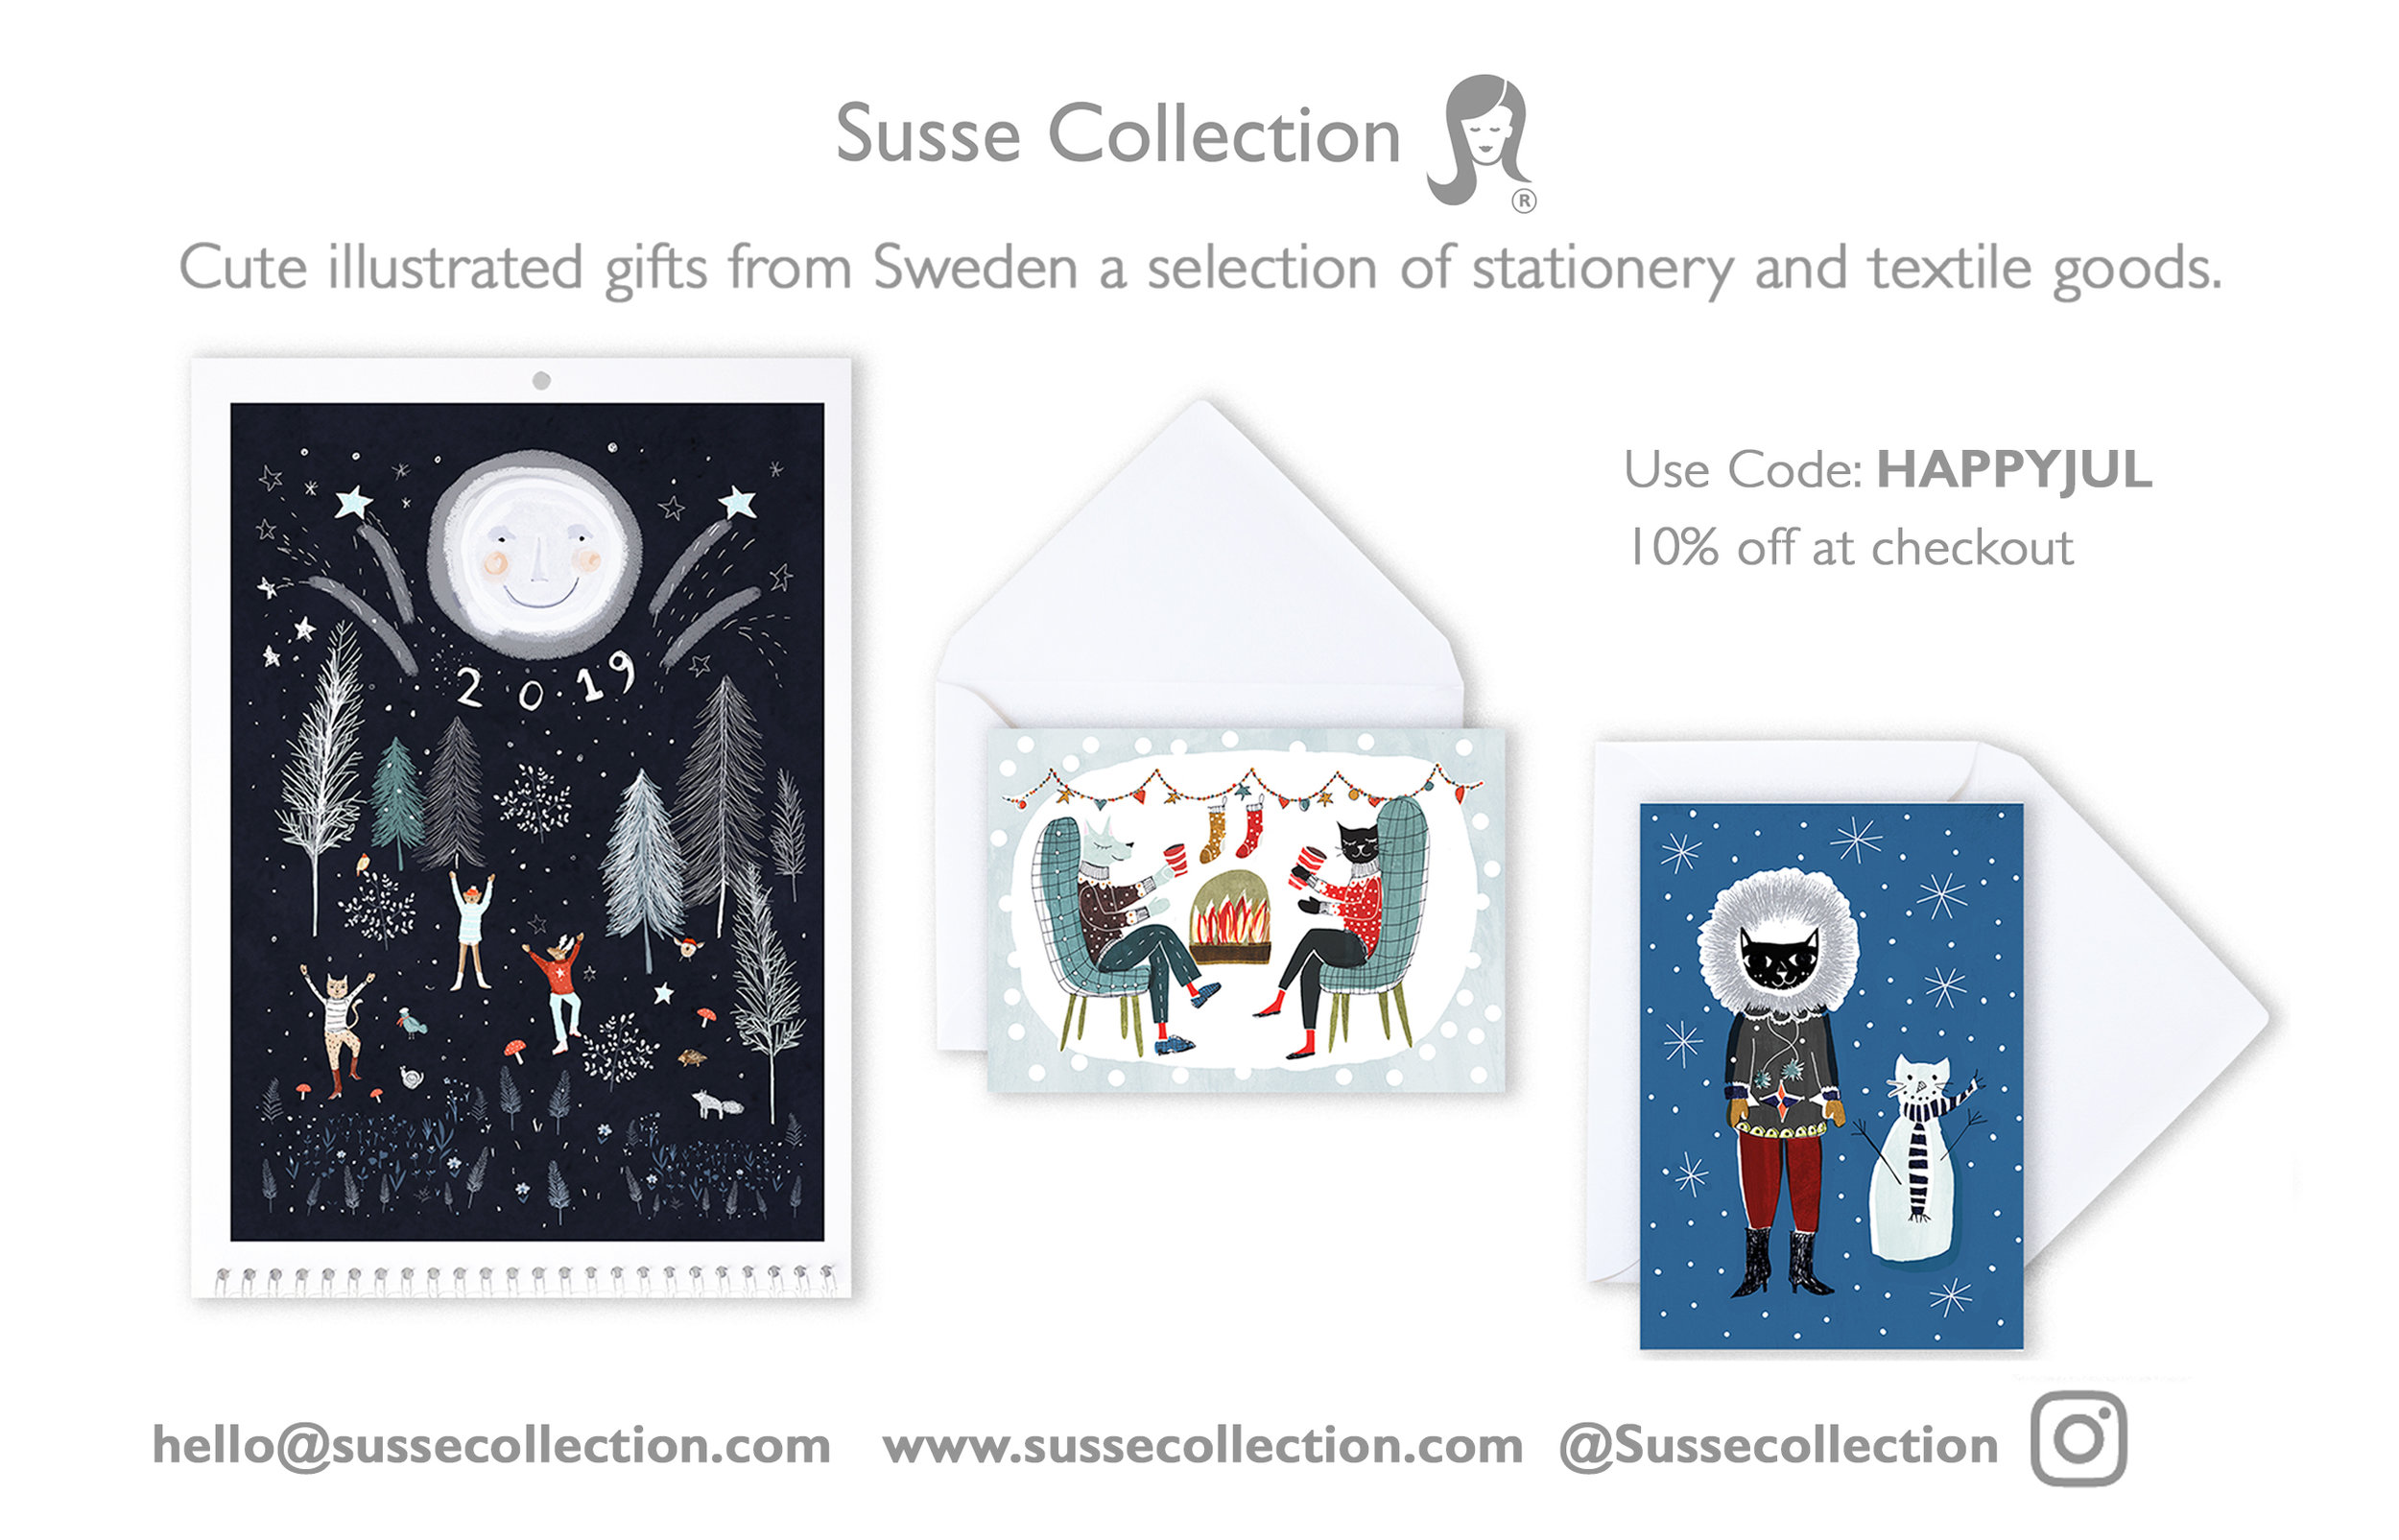 Susse Collection AD.jpg